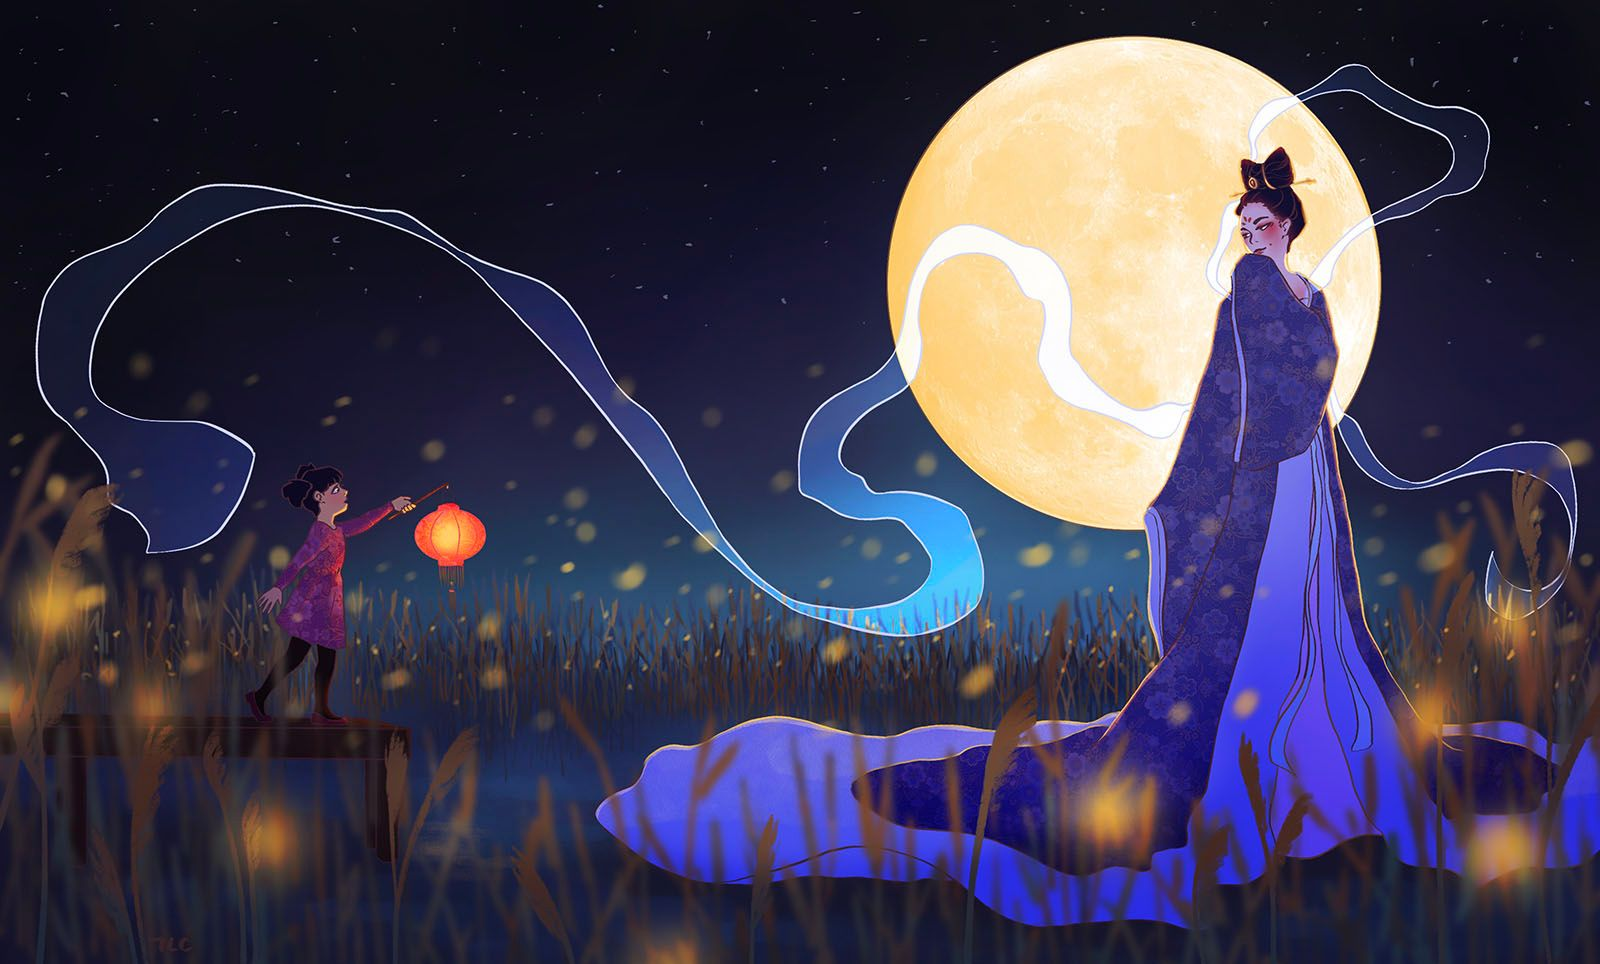 Lady and the Moon